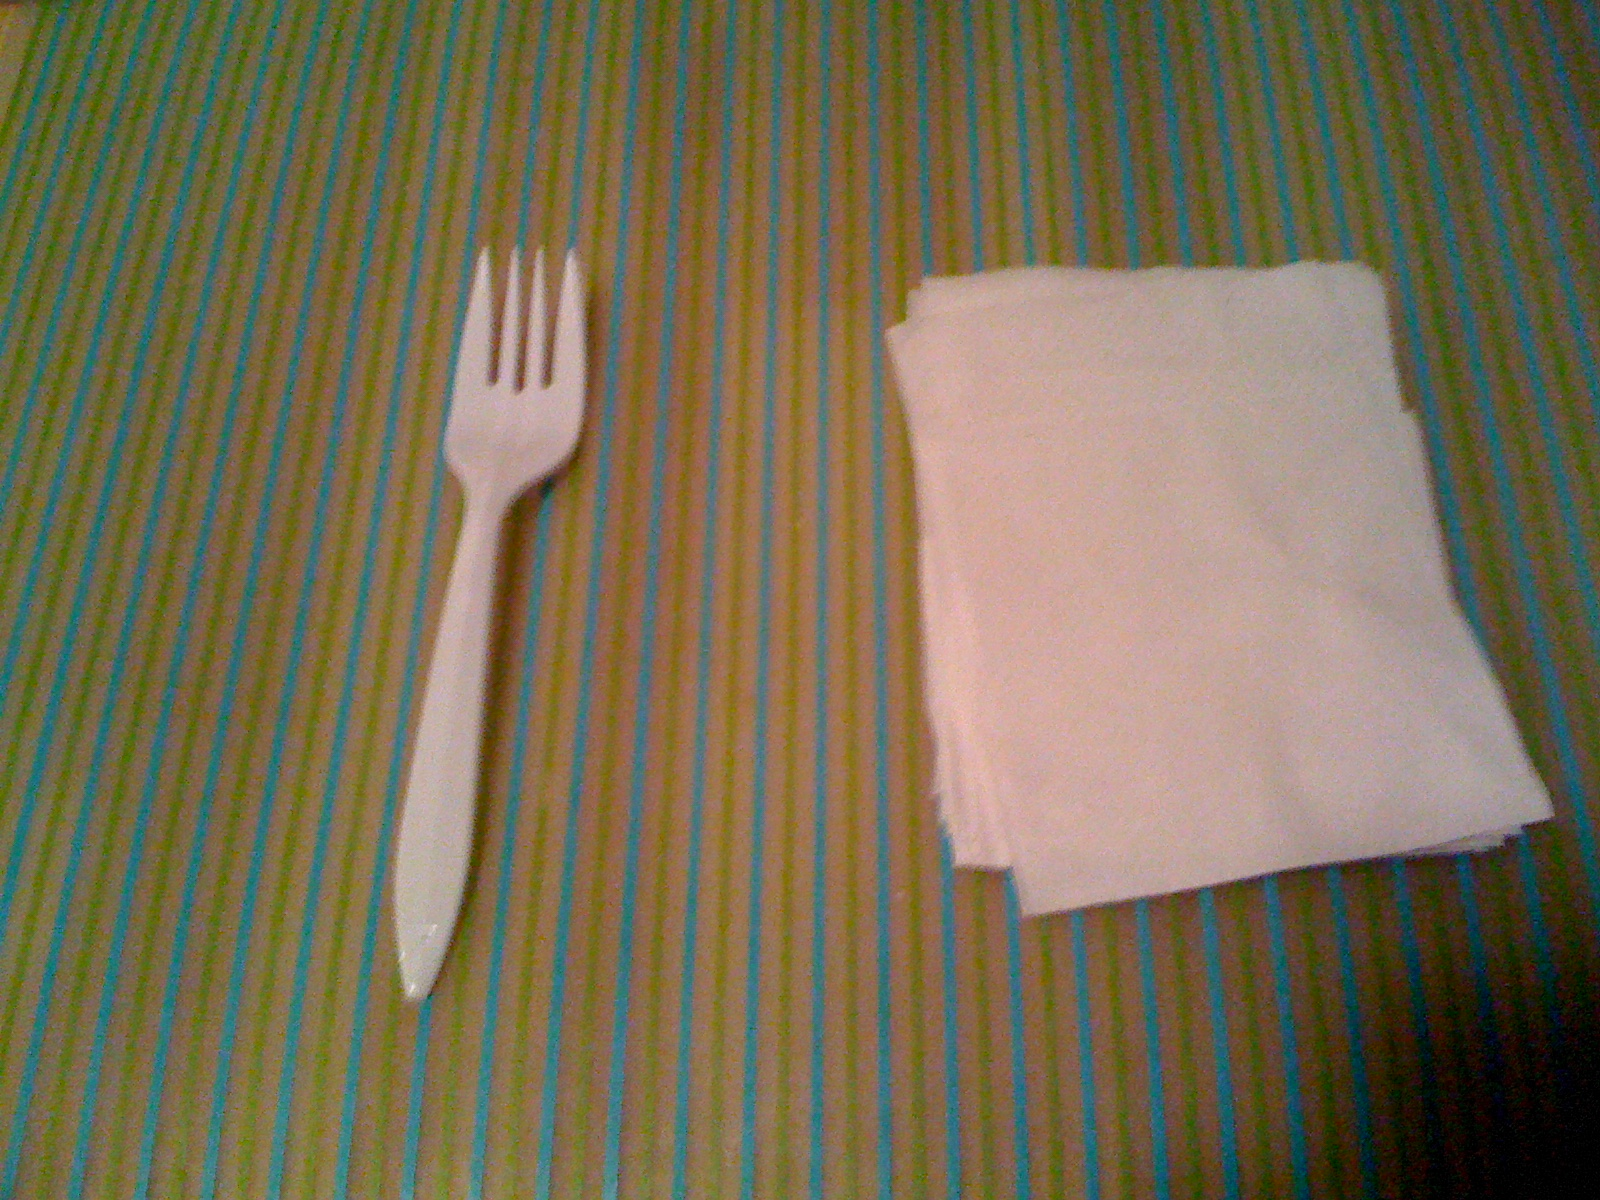 Fork, napkins, striped plastic placement arrangement by Charlie